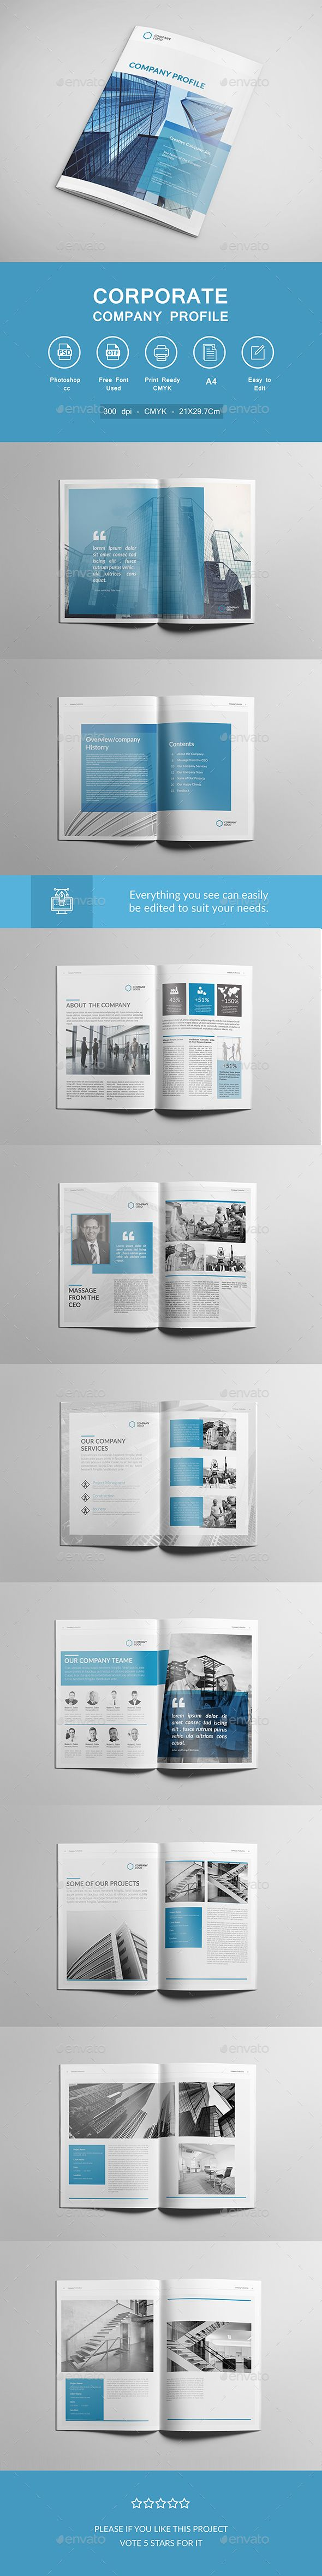 Corporate Company Profile Brochure Template PSD. Download here: https://graphicriver.net/item/corporate-company-profile-brochure/17451347?ref=ksioks